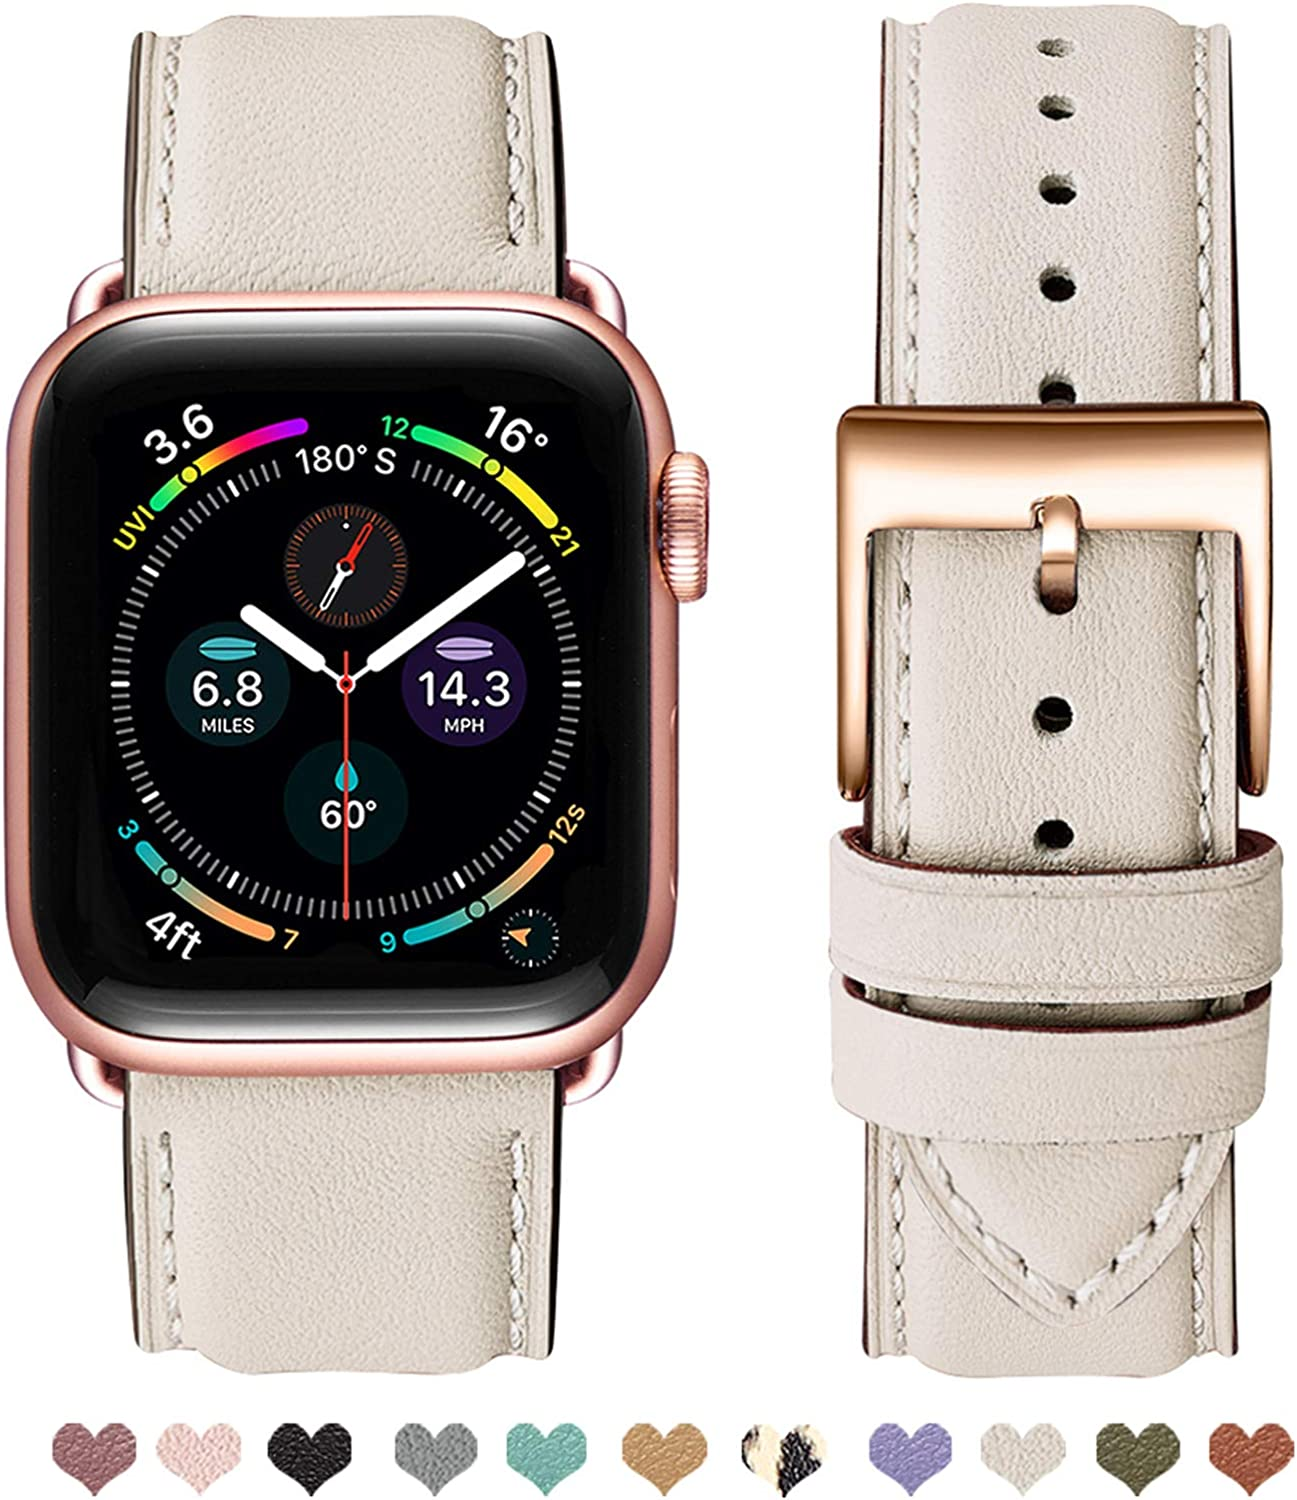 OMIU Square Bands Compatible for Apple Watch 38mm 40mm 42mm 44mm, Genuine Leather Replacement Band Compatible with Apple Watch Series 6/5/4/3/2/1, iWatch SE (Ivory White Strap/Rose Gold Connector, 38mm 40mm)